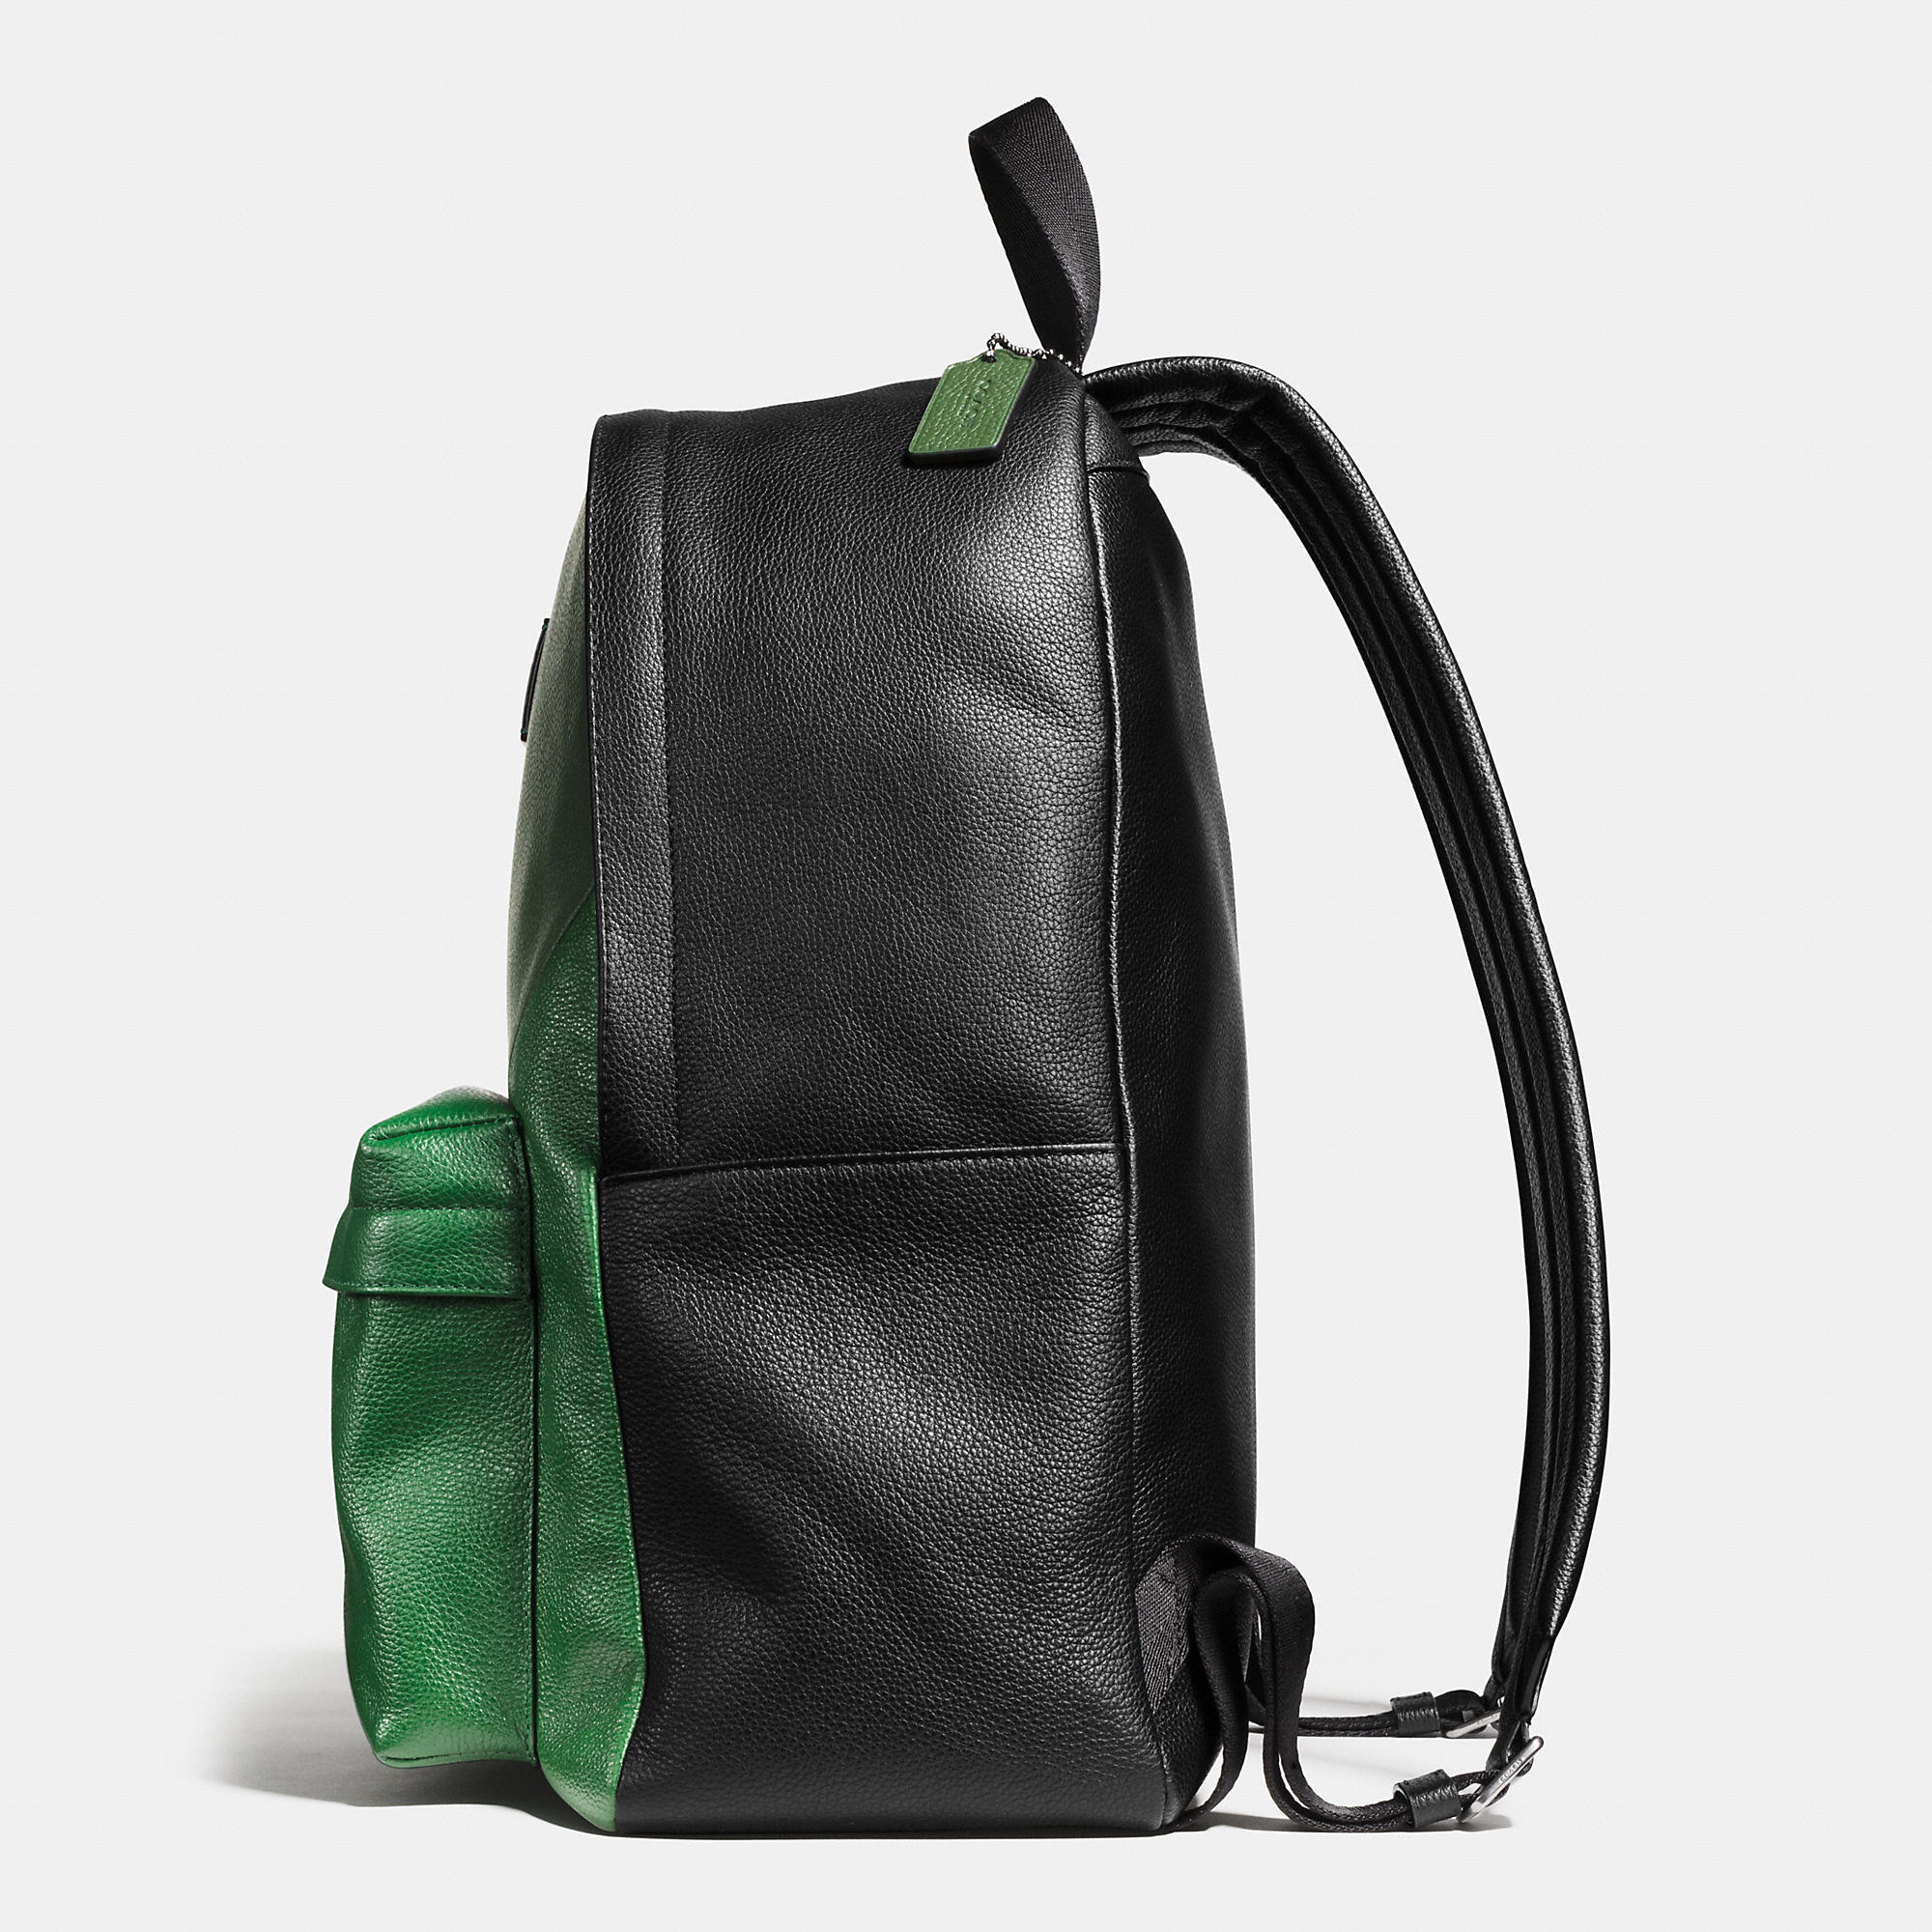 ff8c0fefc921 ... authentic coach campus backpack in patchwork pebble leather in green for  men 10932 856e2